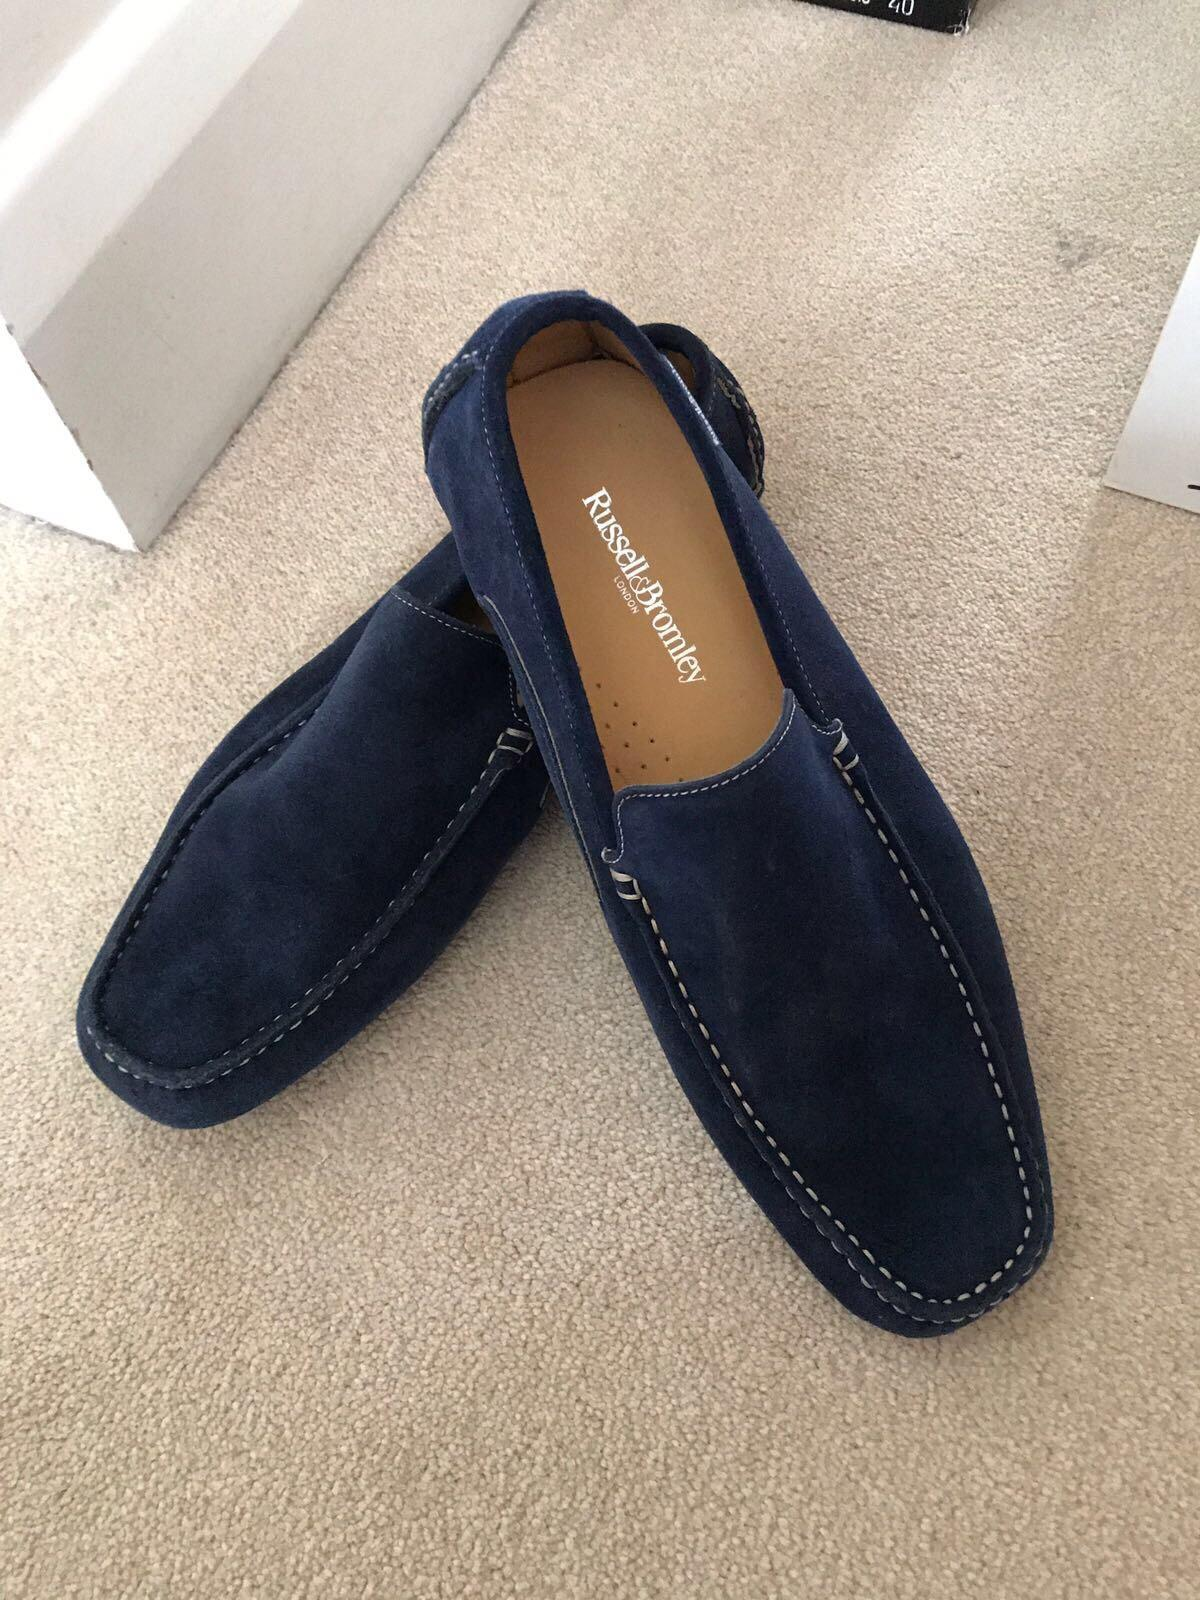 5071bbfe9c9 Russell and Bromley Men's Driving Shoes